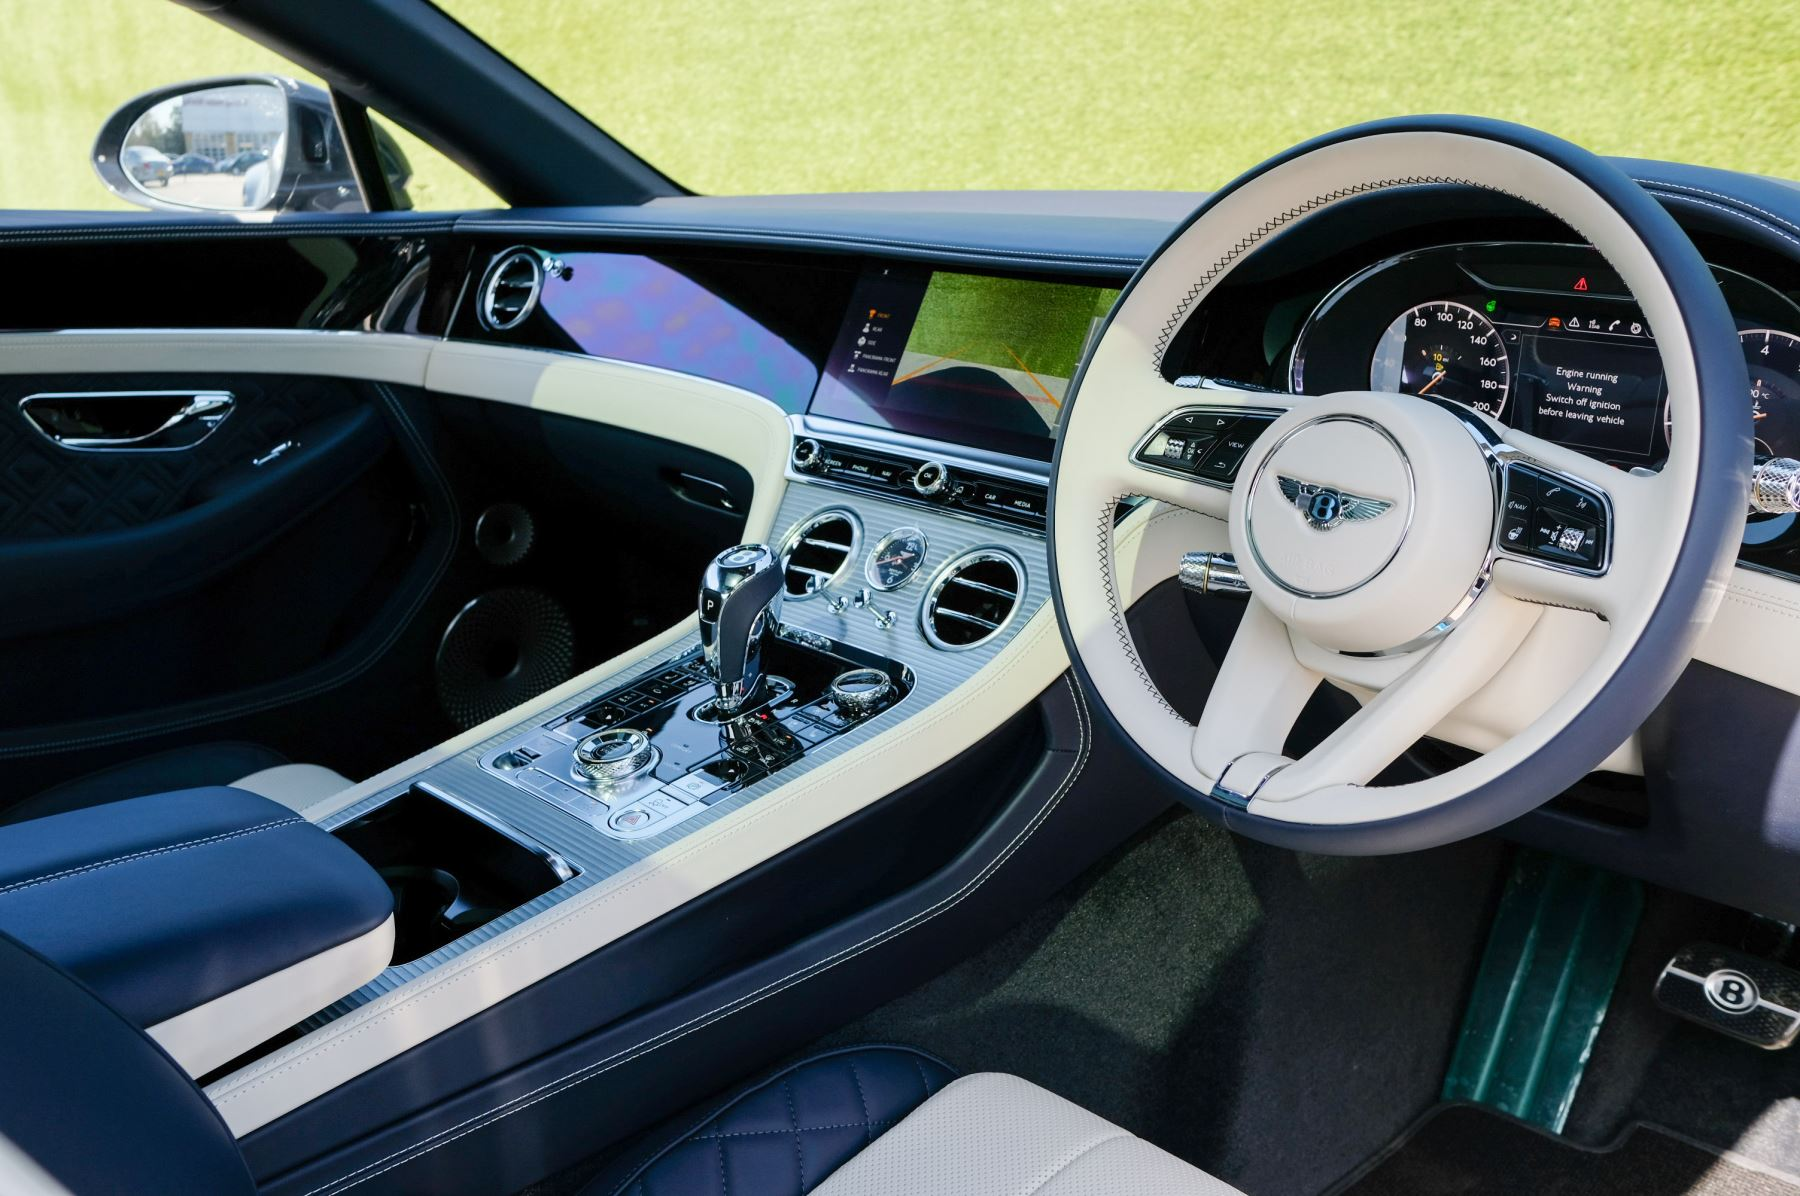 Bentley Continental GT 4.0 V8 Mulliner Edition 2dr Auto - City Specification - Panoramic Glass Roof image 12